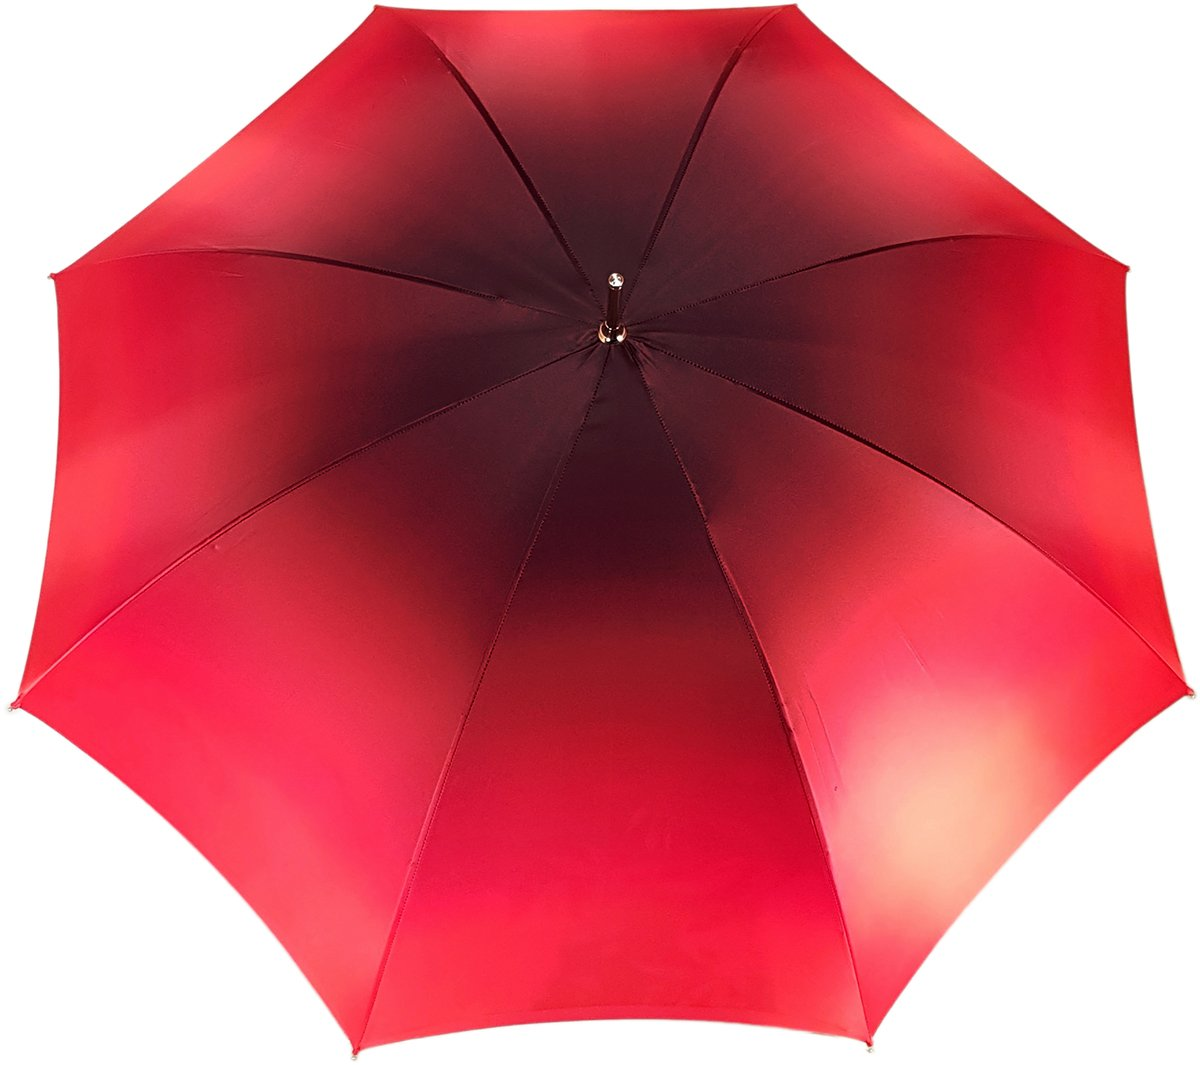 LOVELY FLOWERED DOUBLE CANOPY UMBRELLA